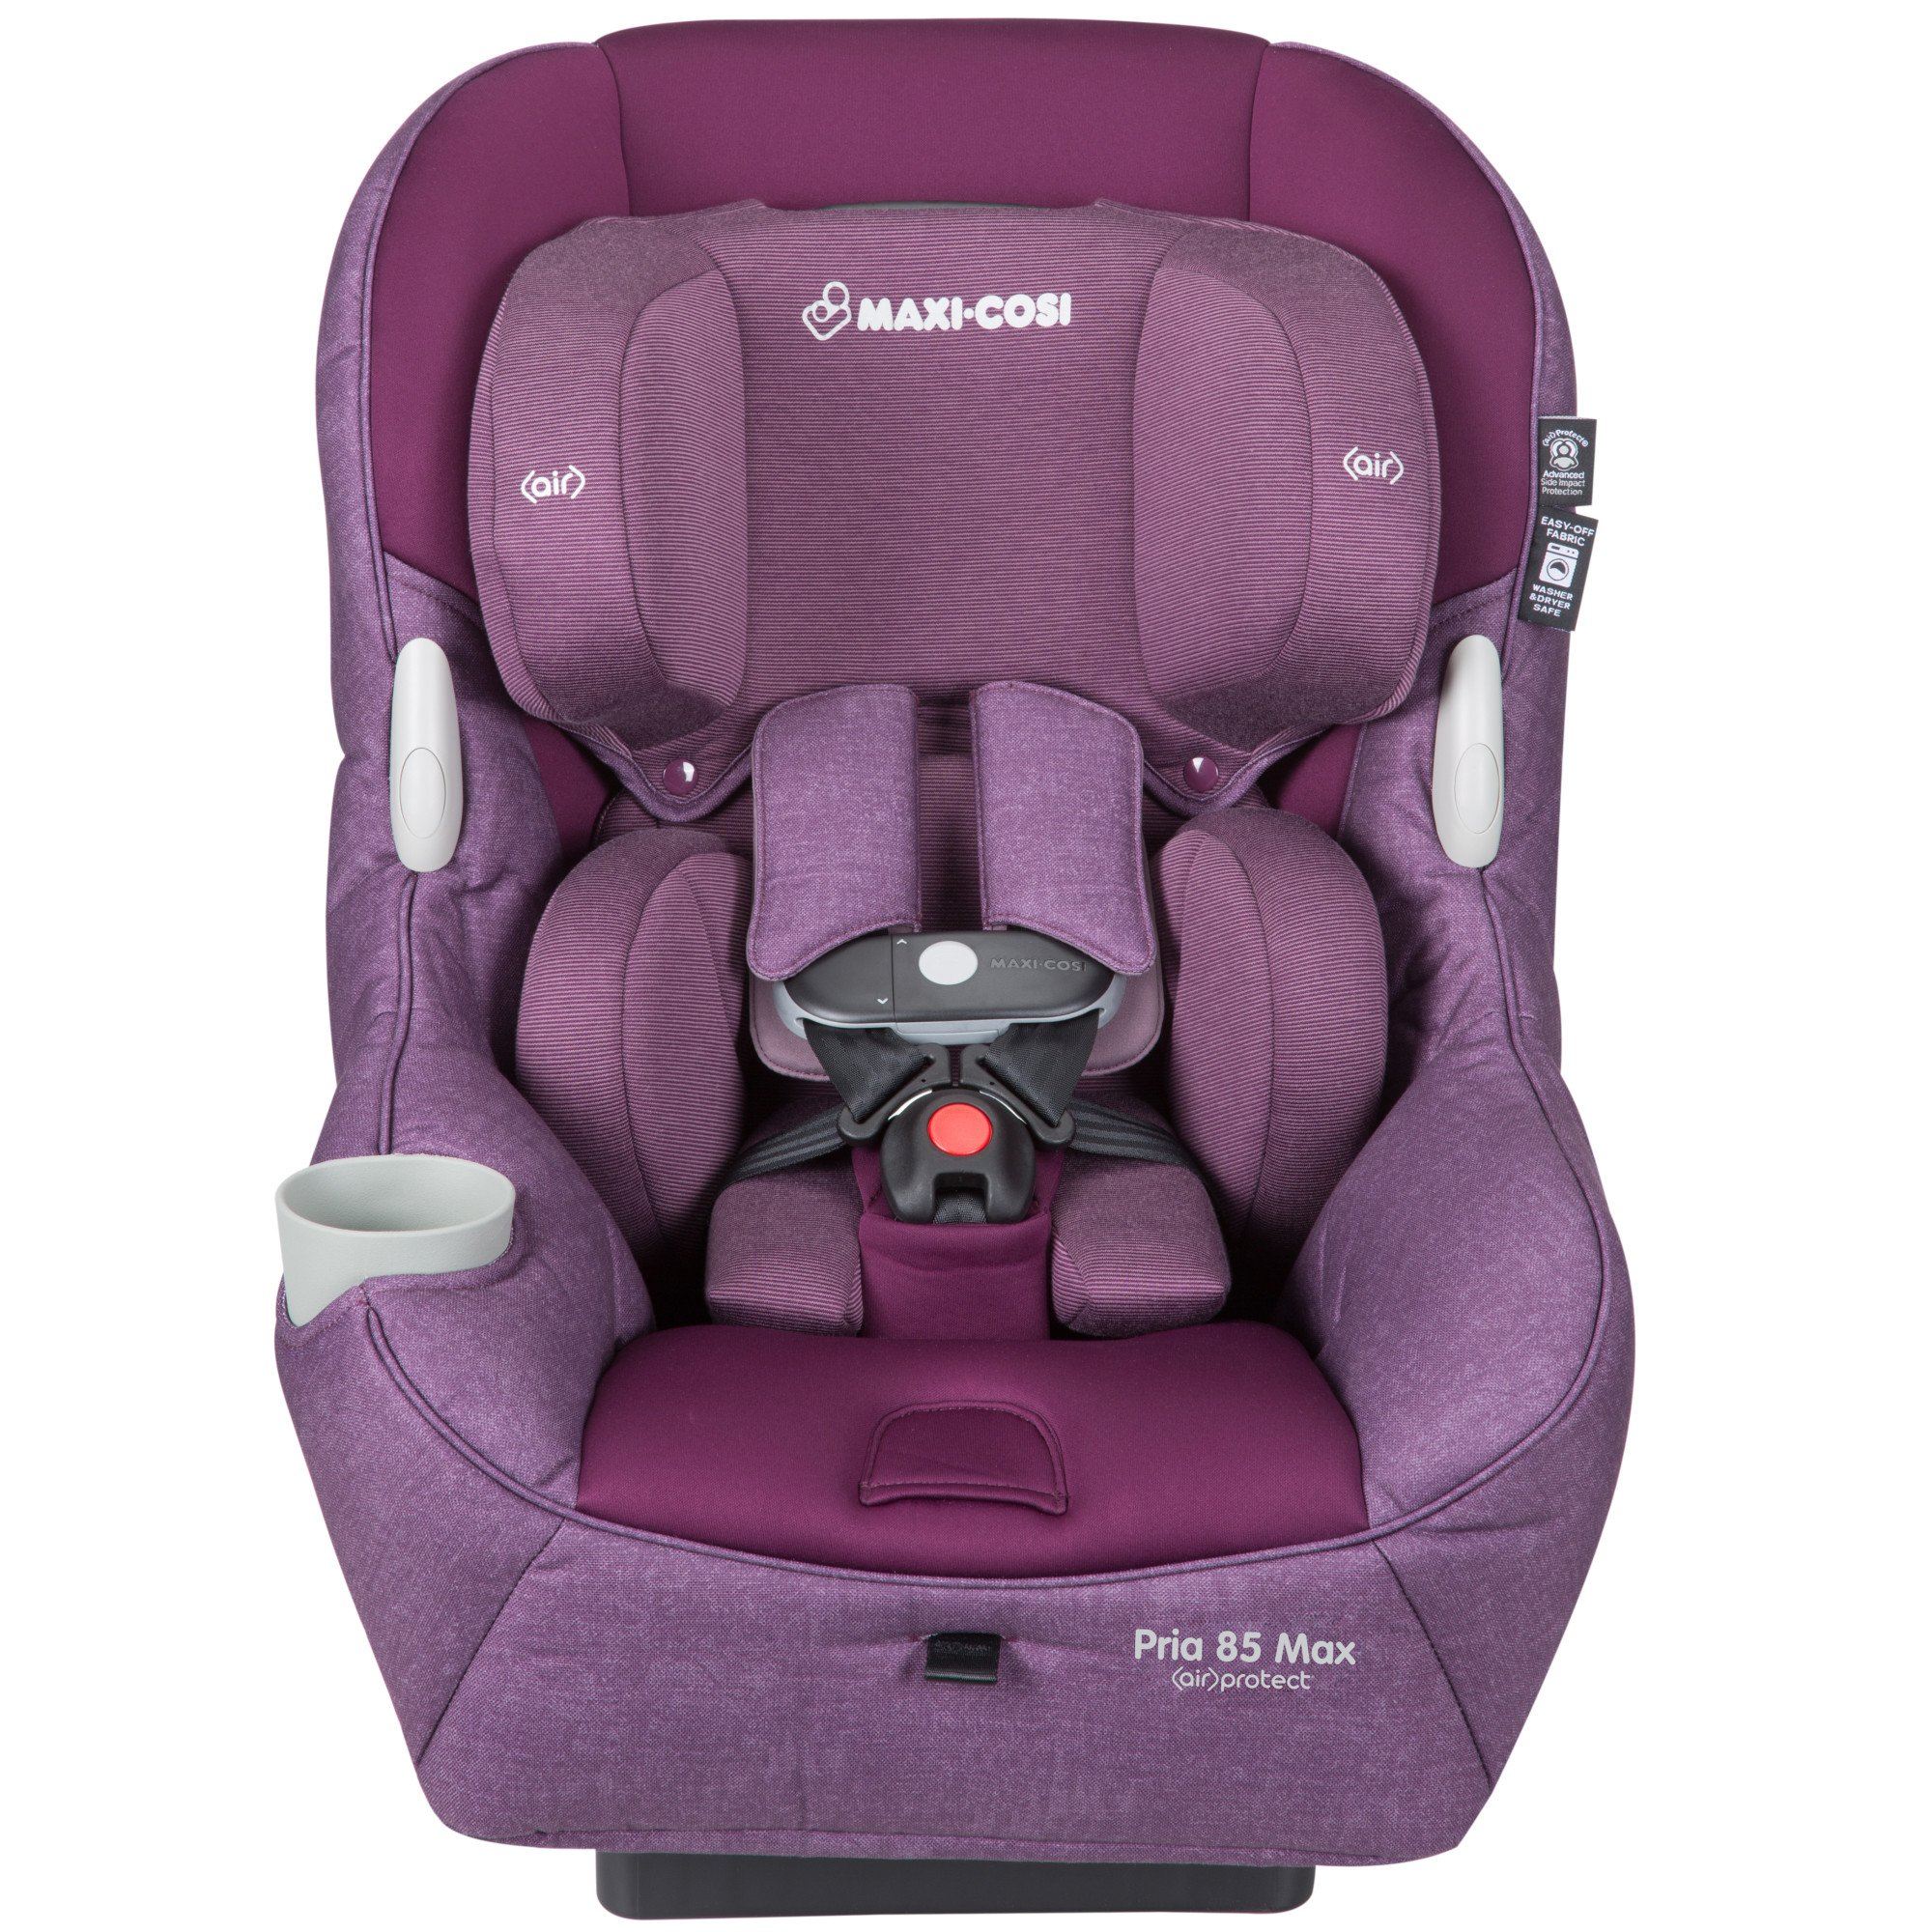 maxi cosi pria 85 max convertible car seat in. Black Bedroom Furniture Sets. Home Design Ideas